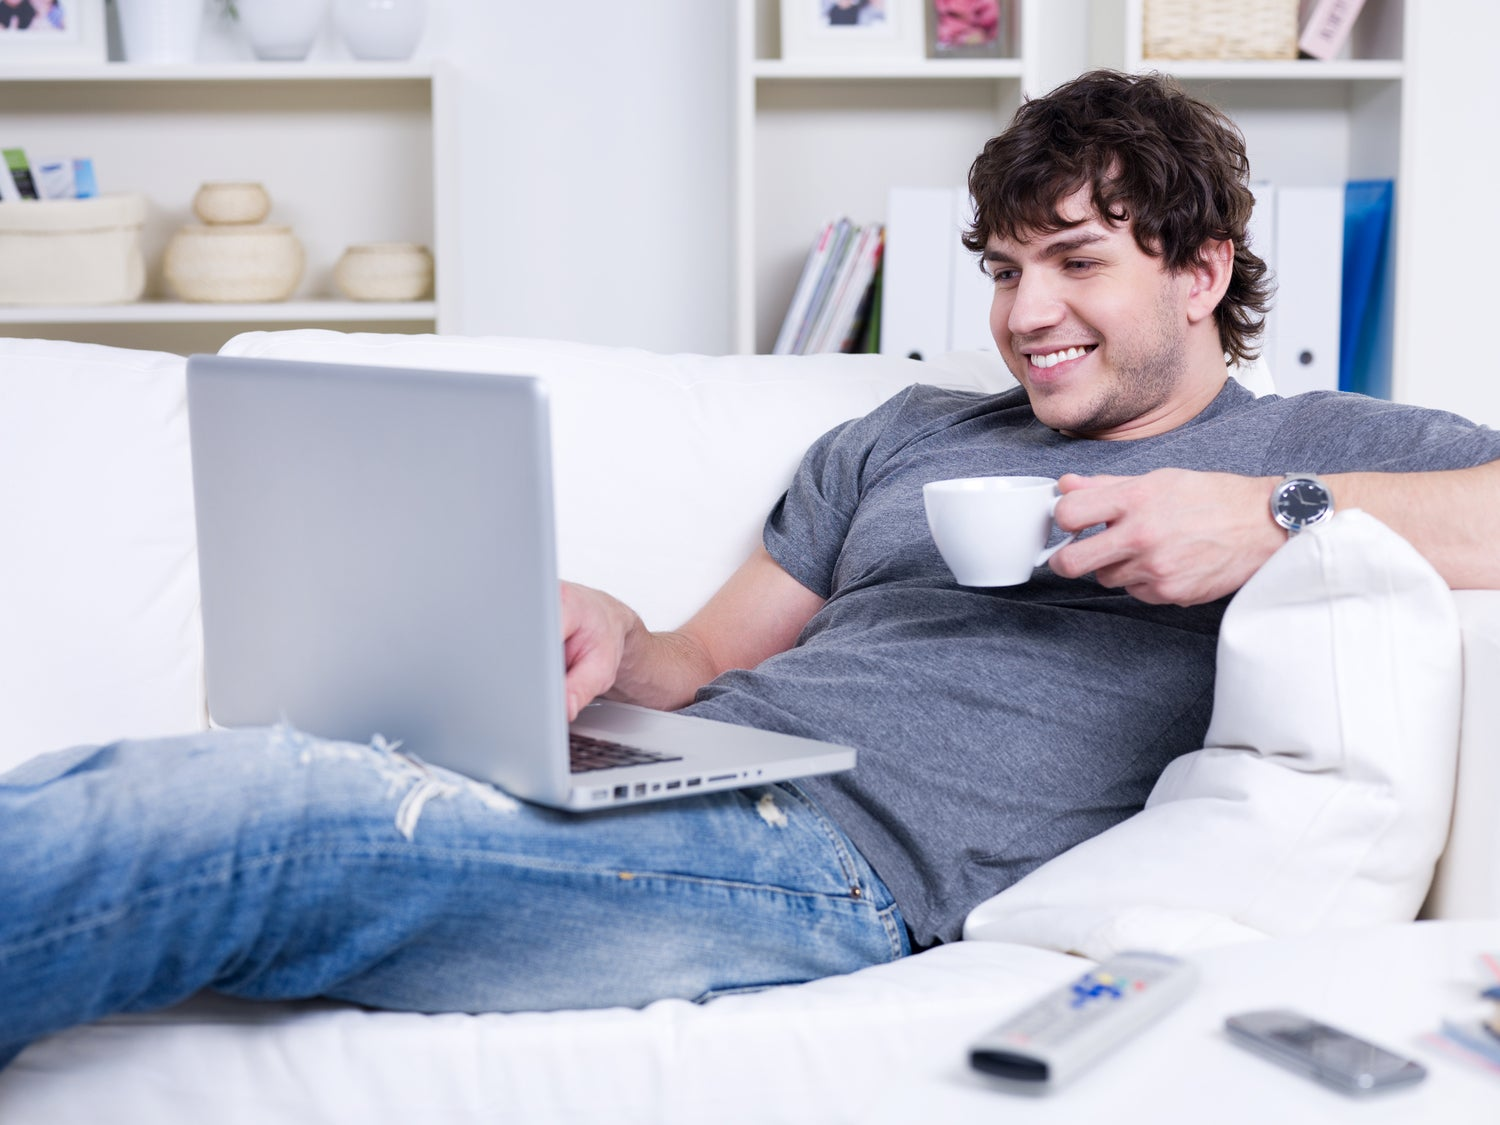 a man on his white couch with a cup of tea or coffee, smiling while using his laptop